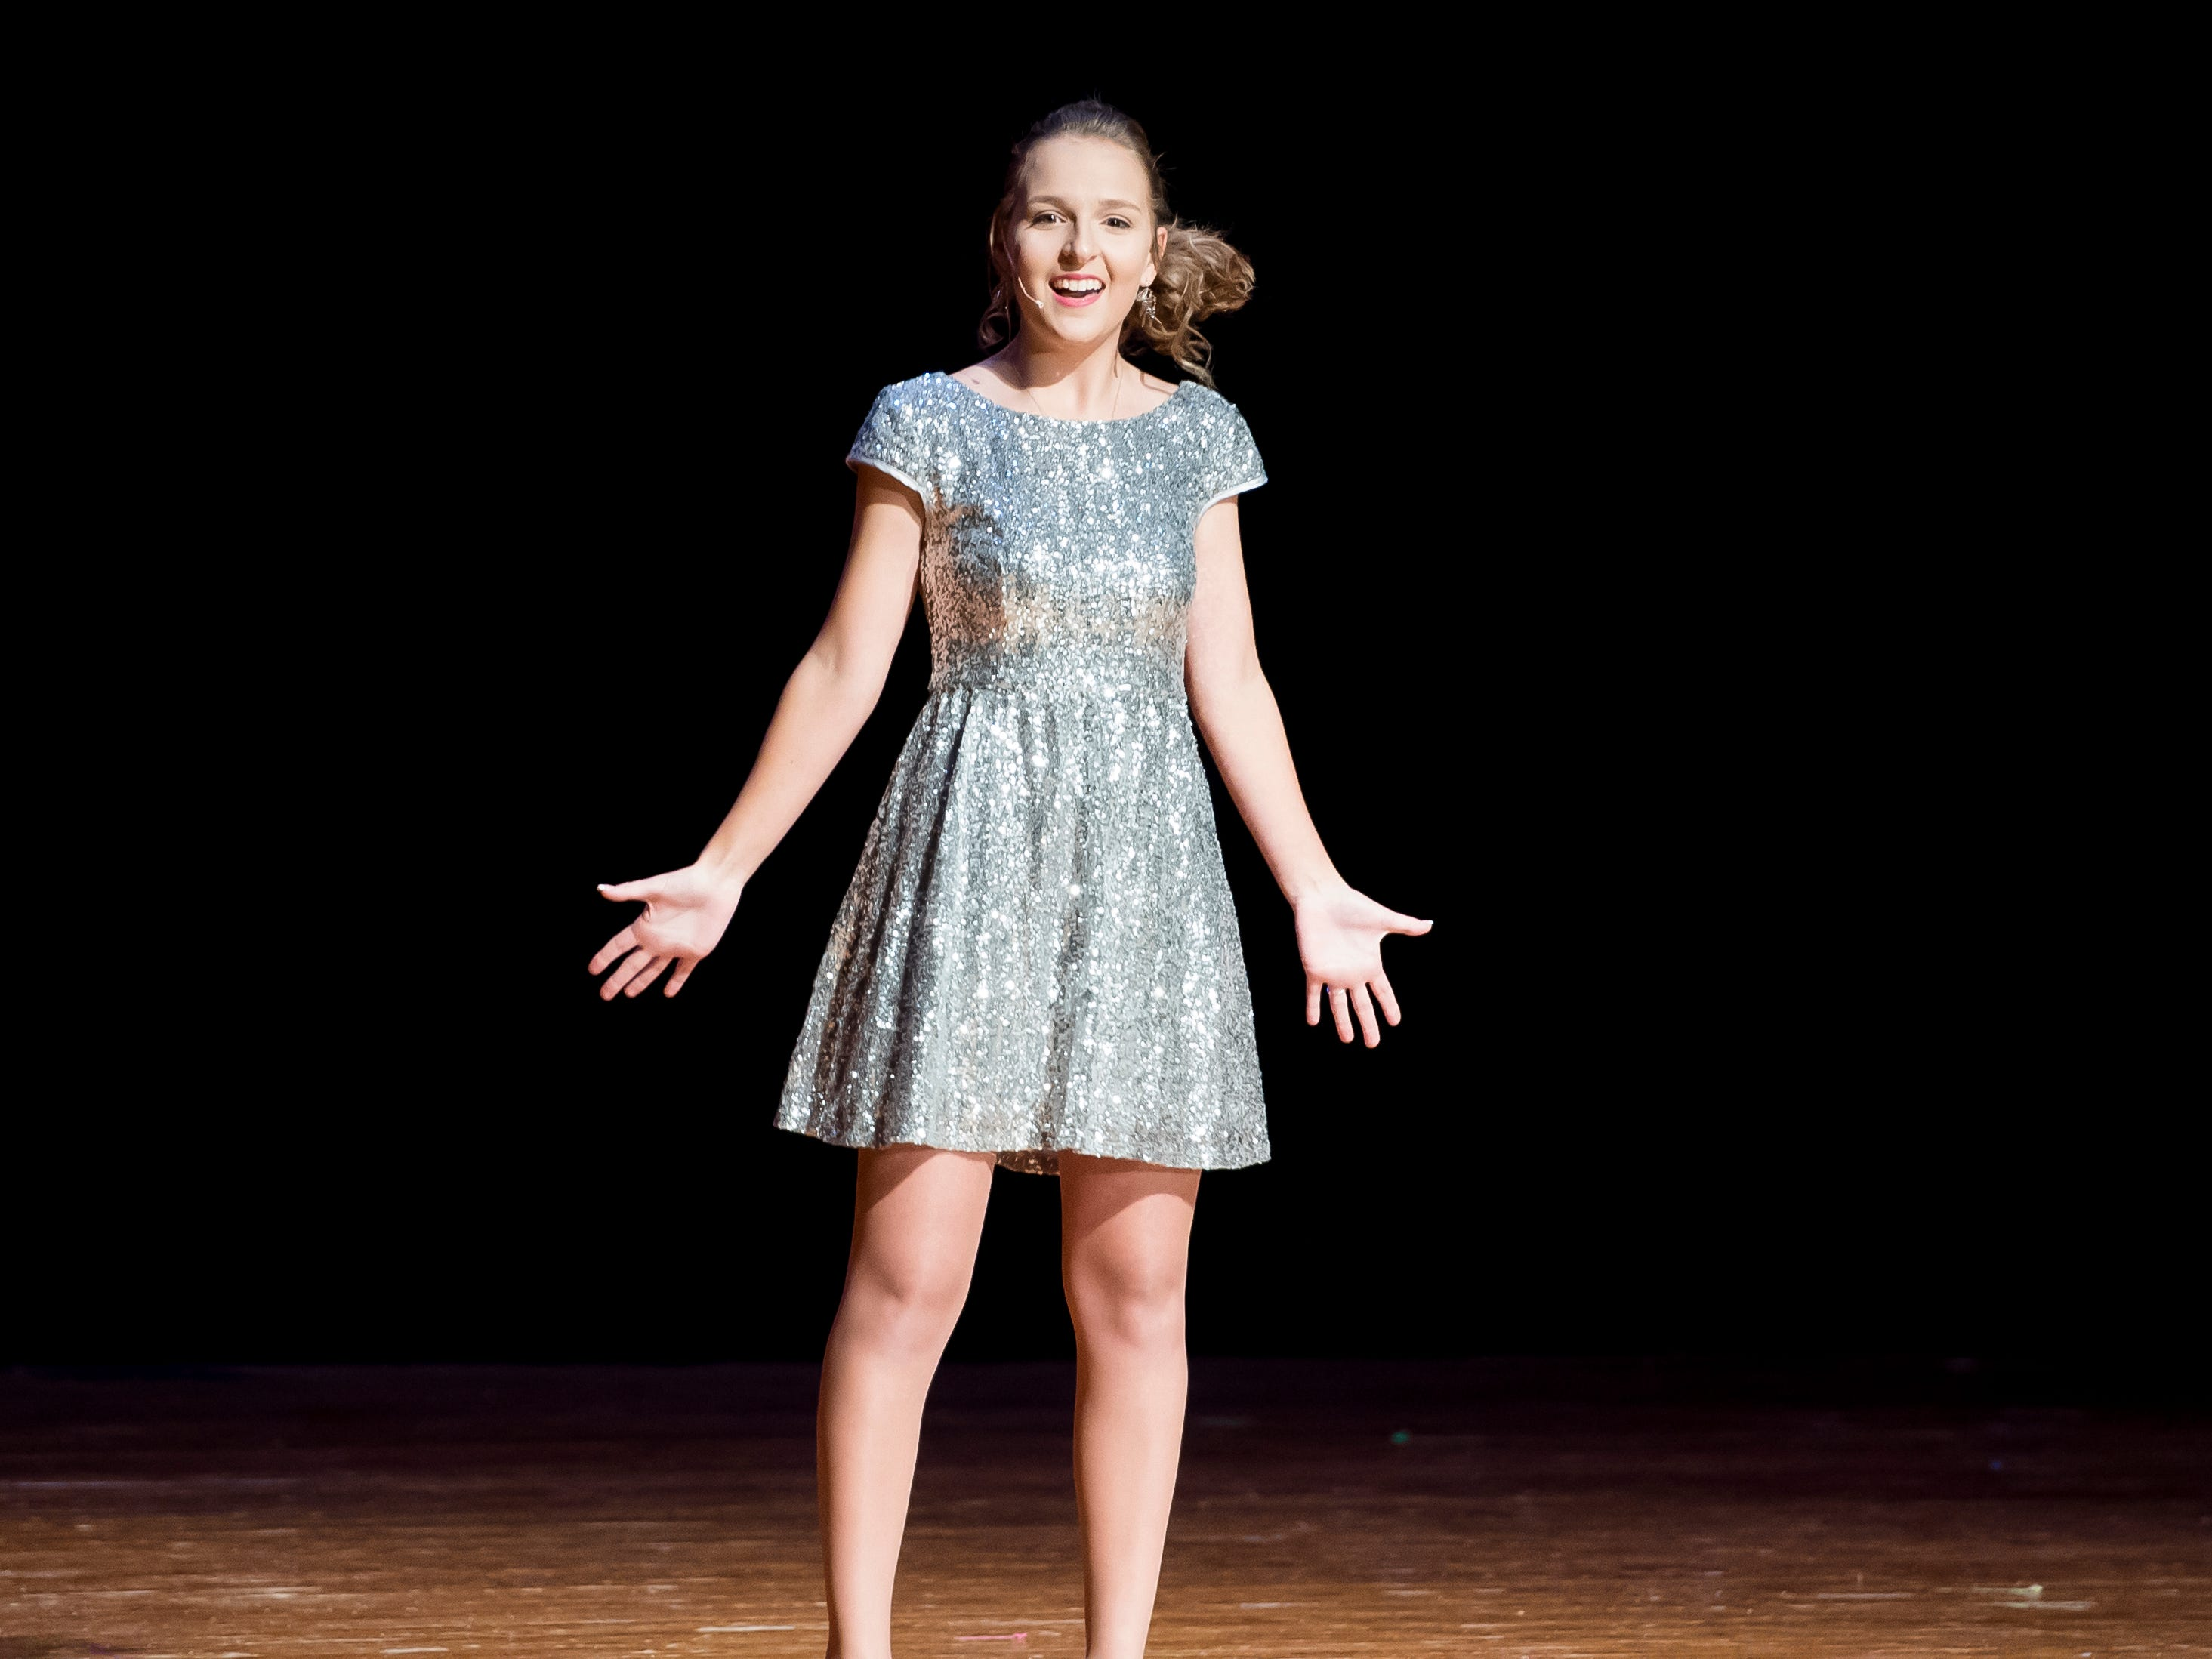 Littlestown's Lindsay Boritz sings during the talent competition at the 50th Miss Hanover Area pageant on Monday, October 22, 2018. Boritz was named second runner-up.